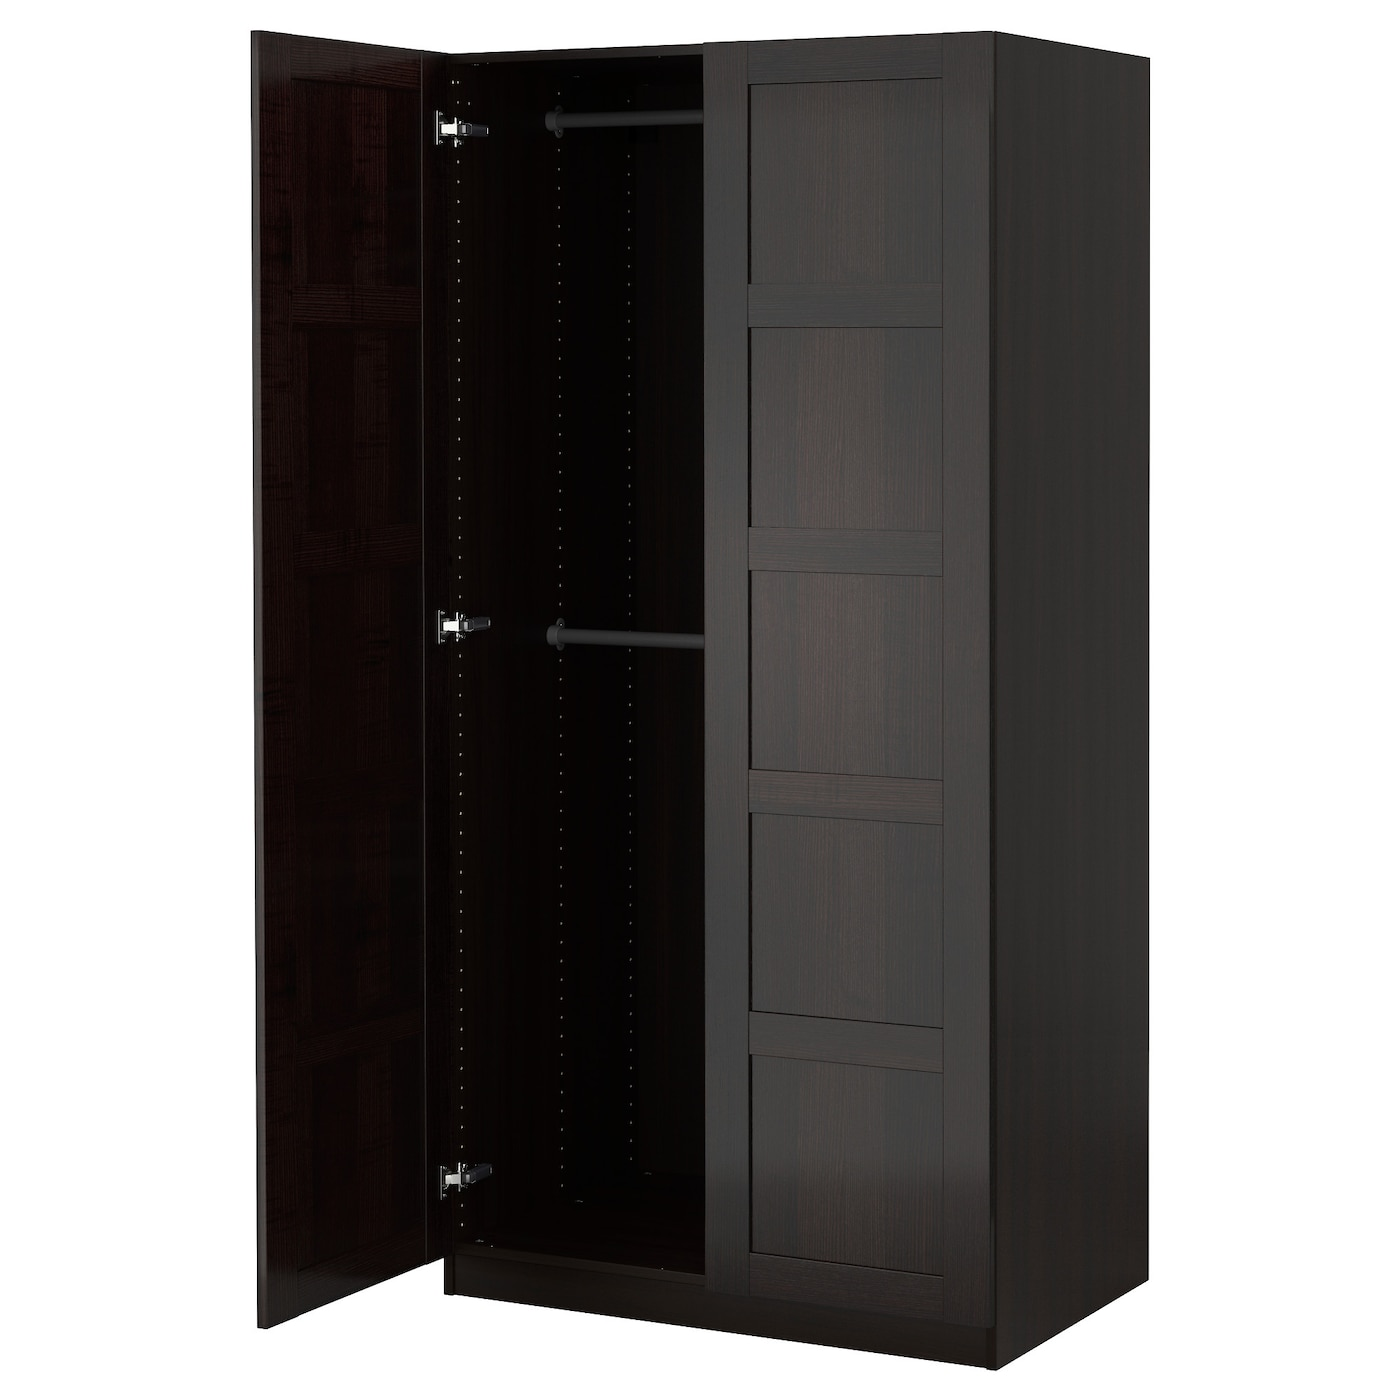 PAX Wardrobe Blackbrownbergsbo Blackbrown Xx Cm IKEA - Ikea wardrobe